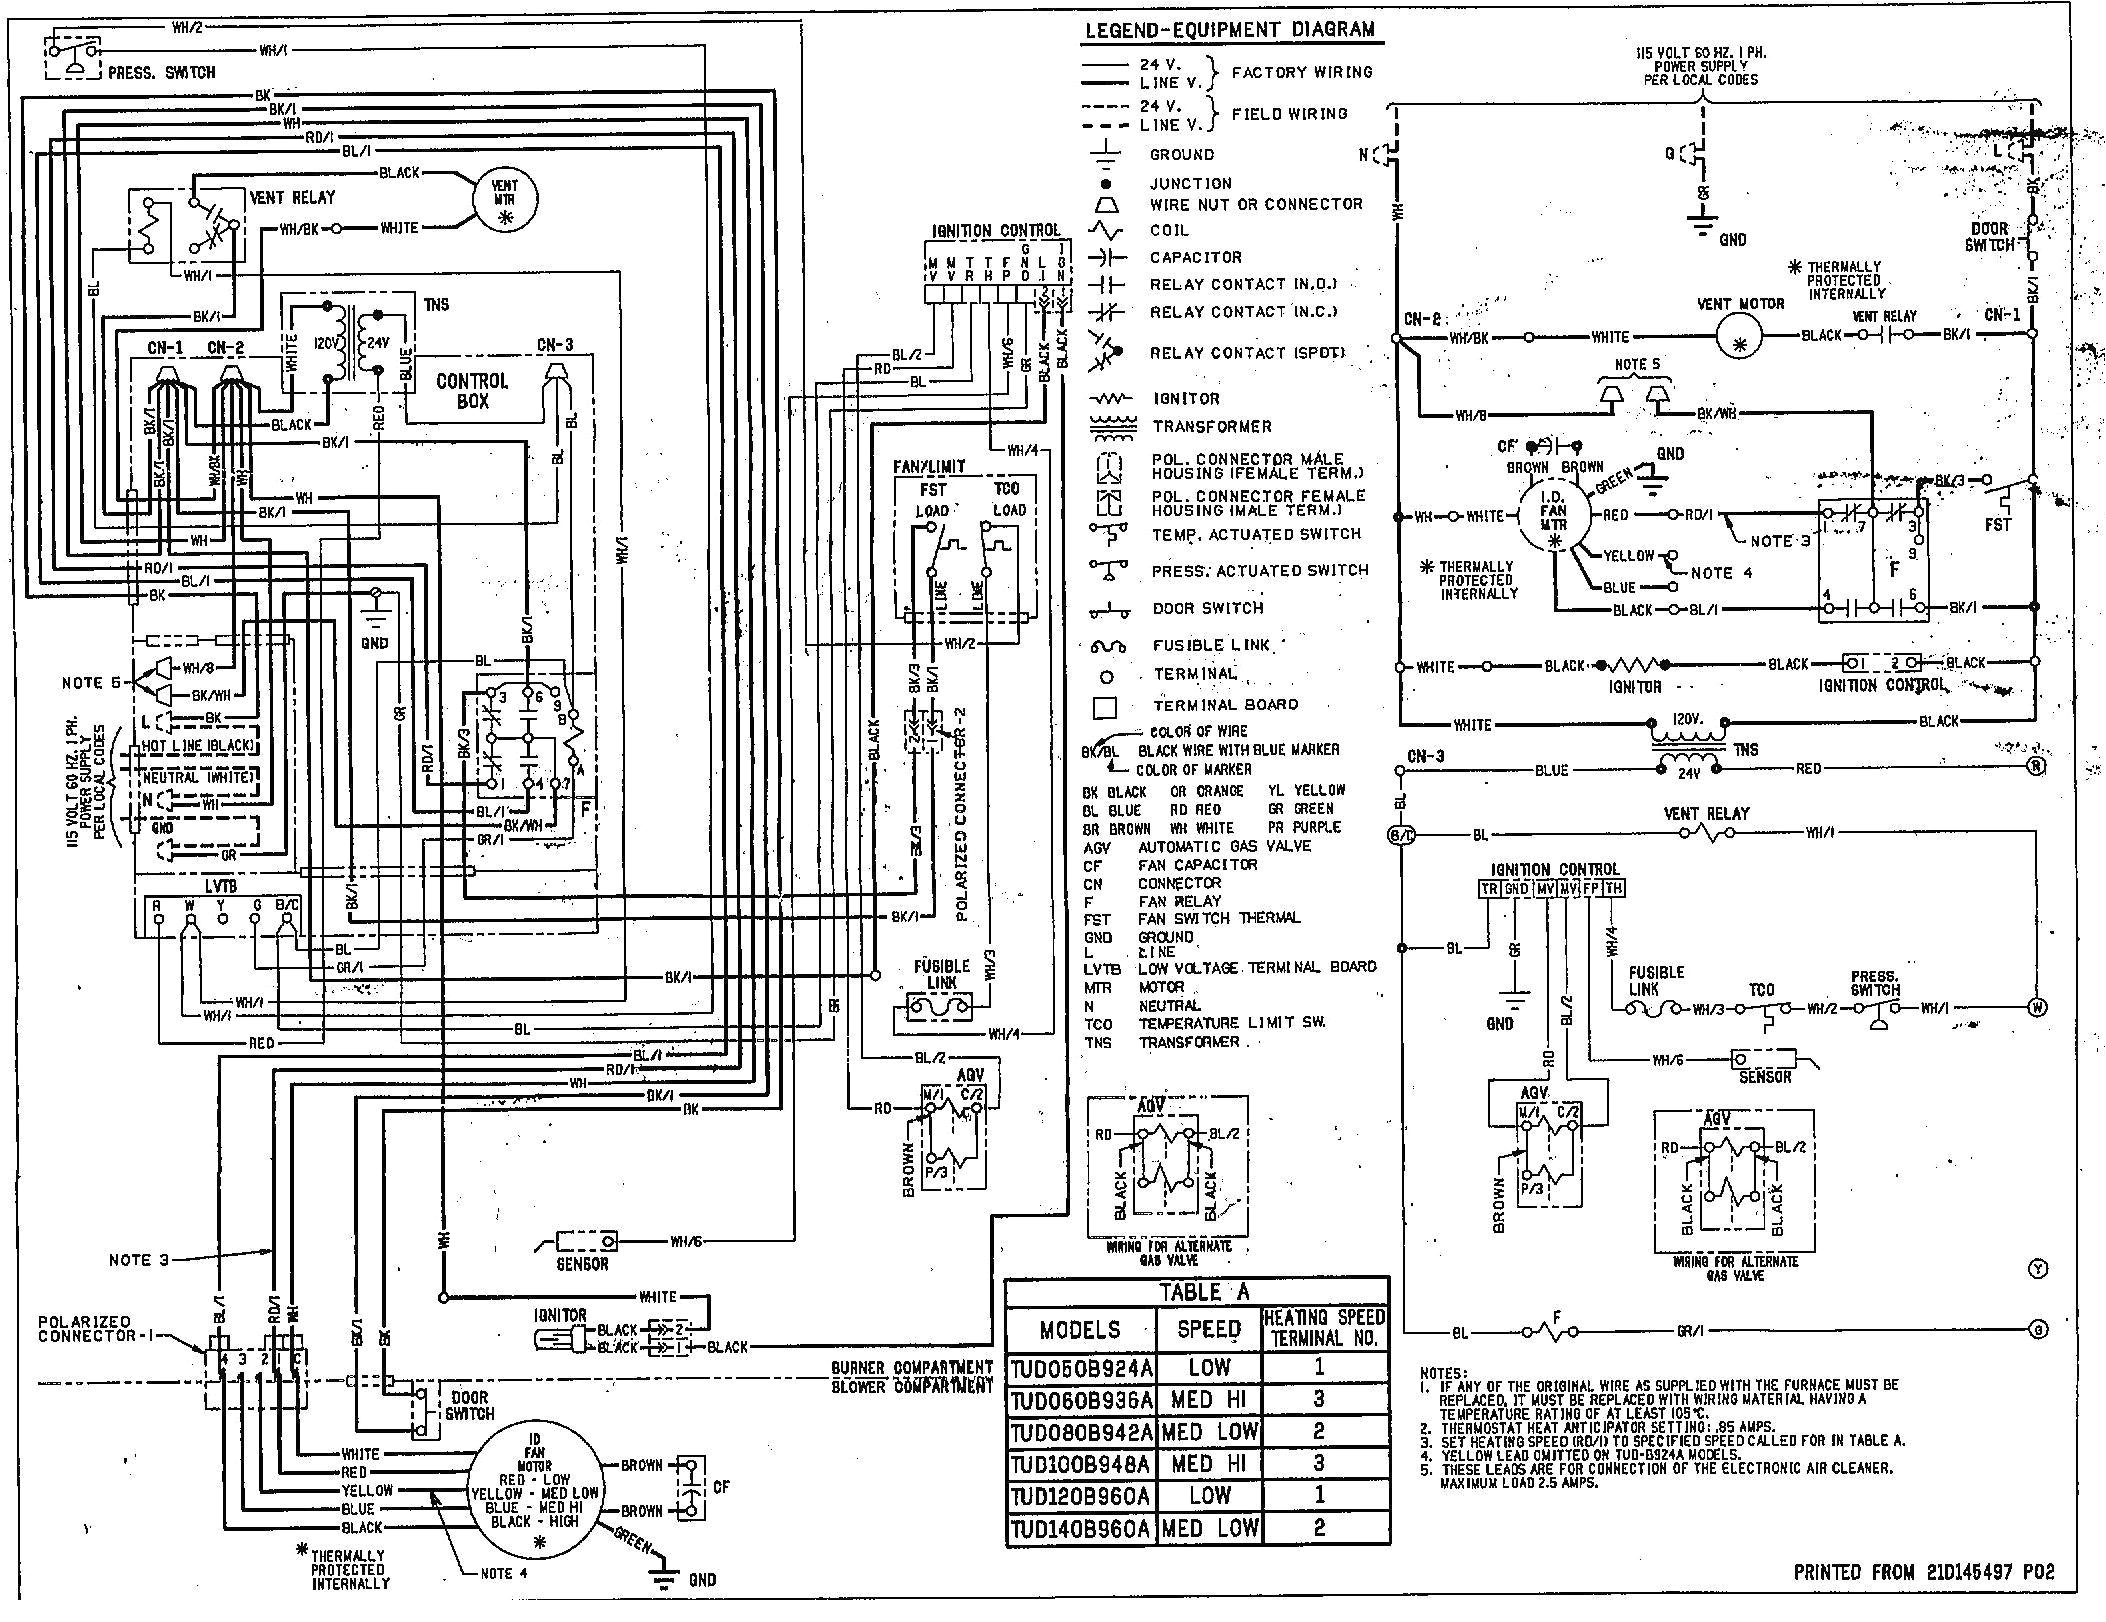 trane xl 1800 wiring diagram wiring diagram all trane xl1800 wiring schematic hvac wiring diagram for